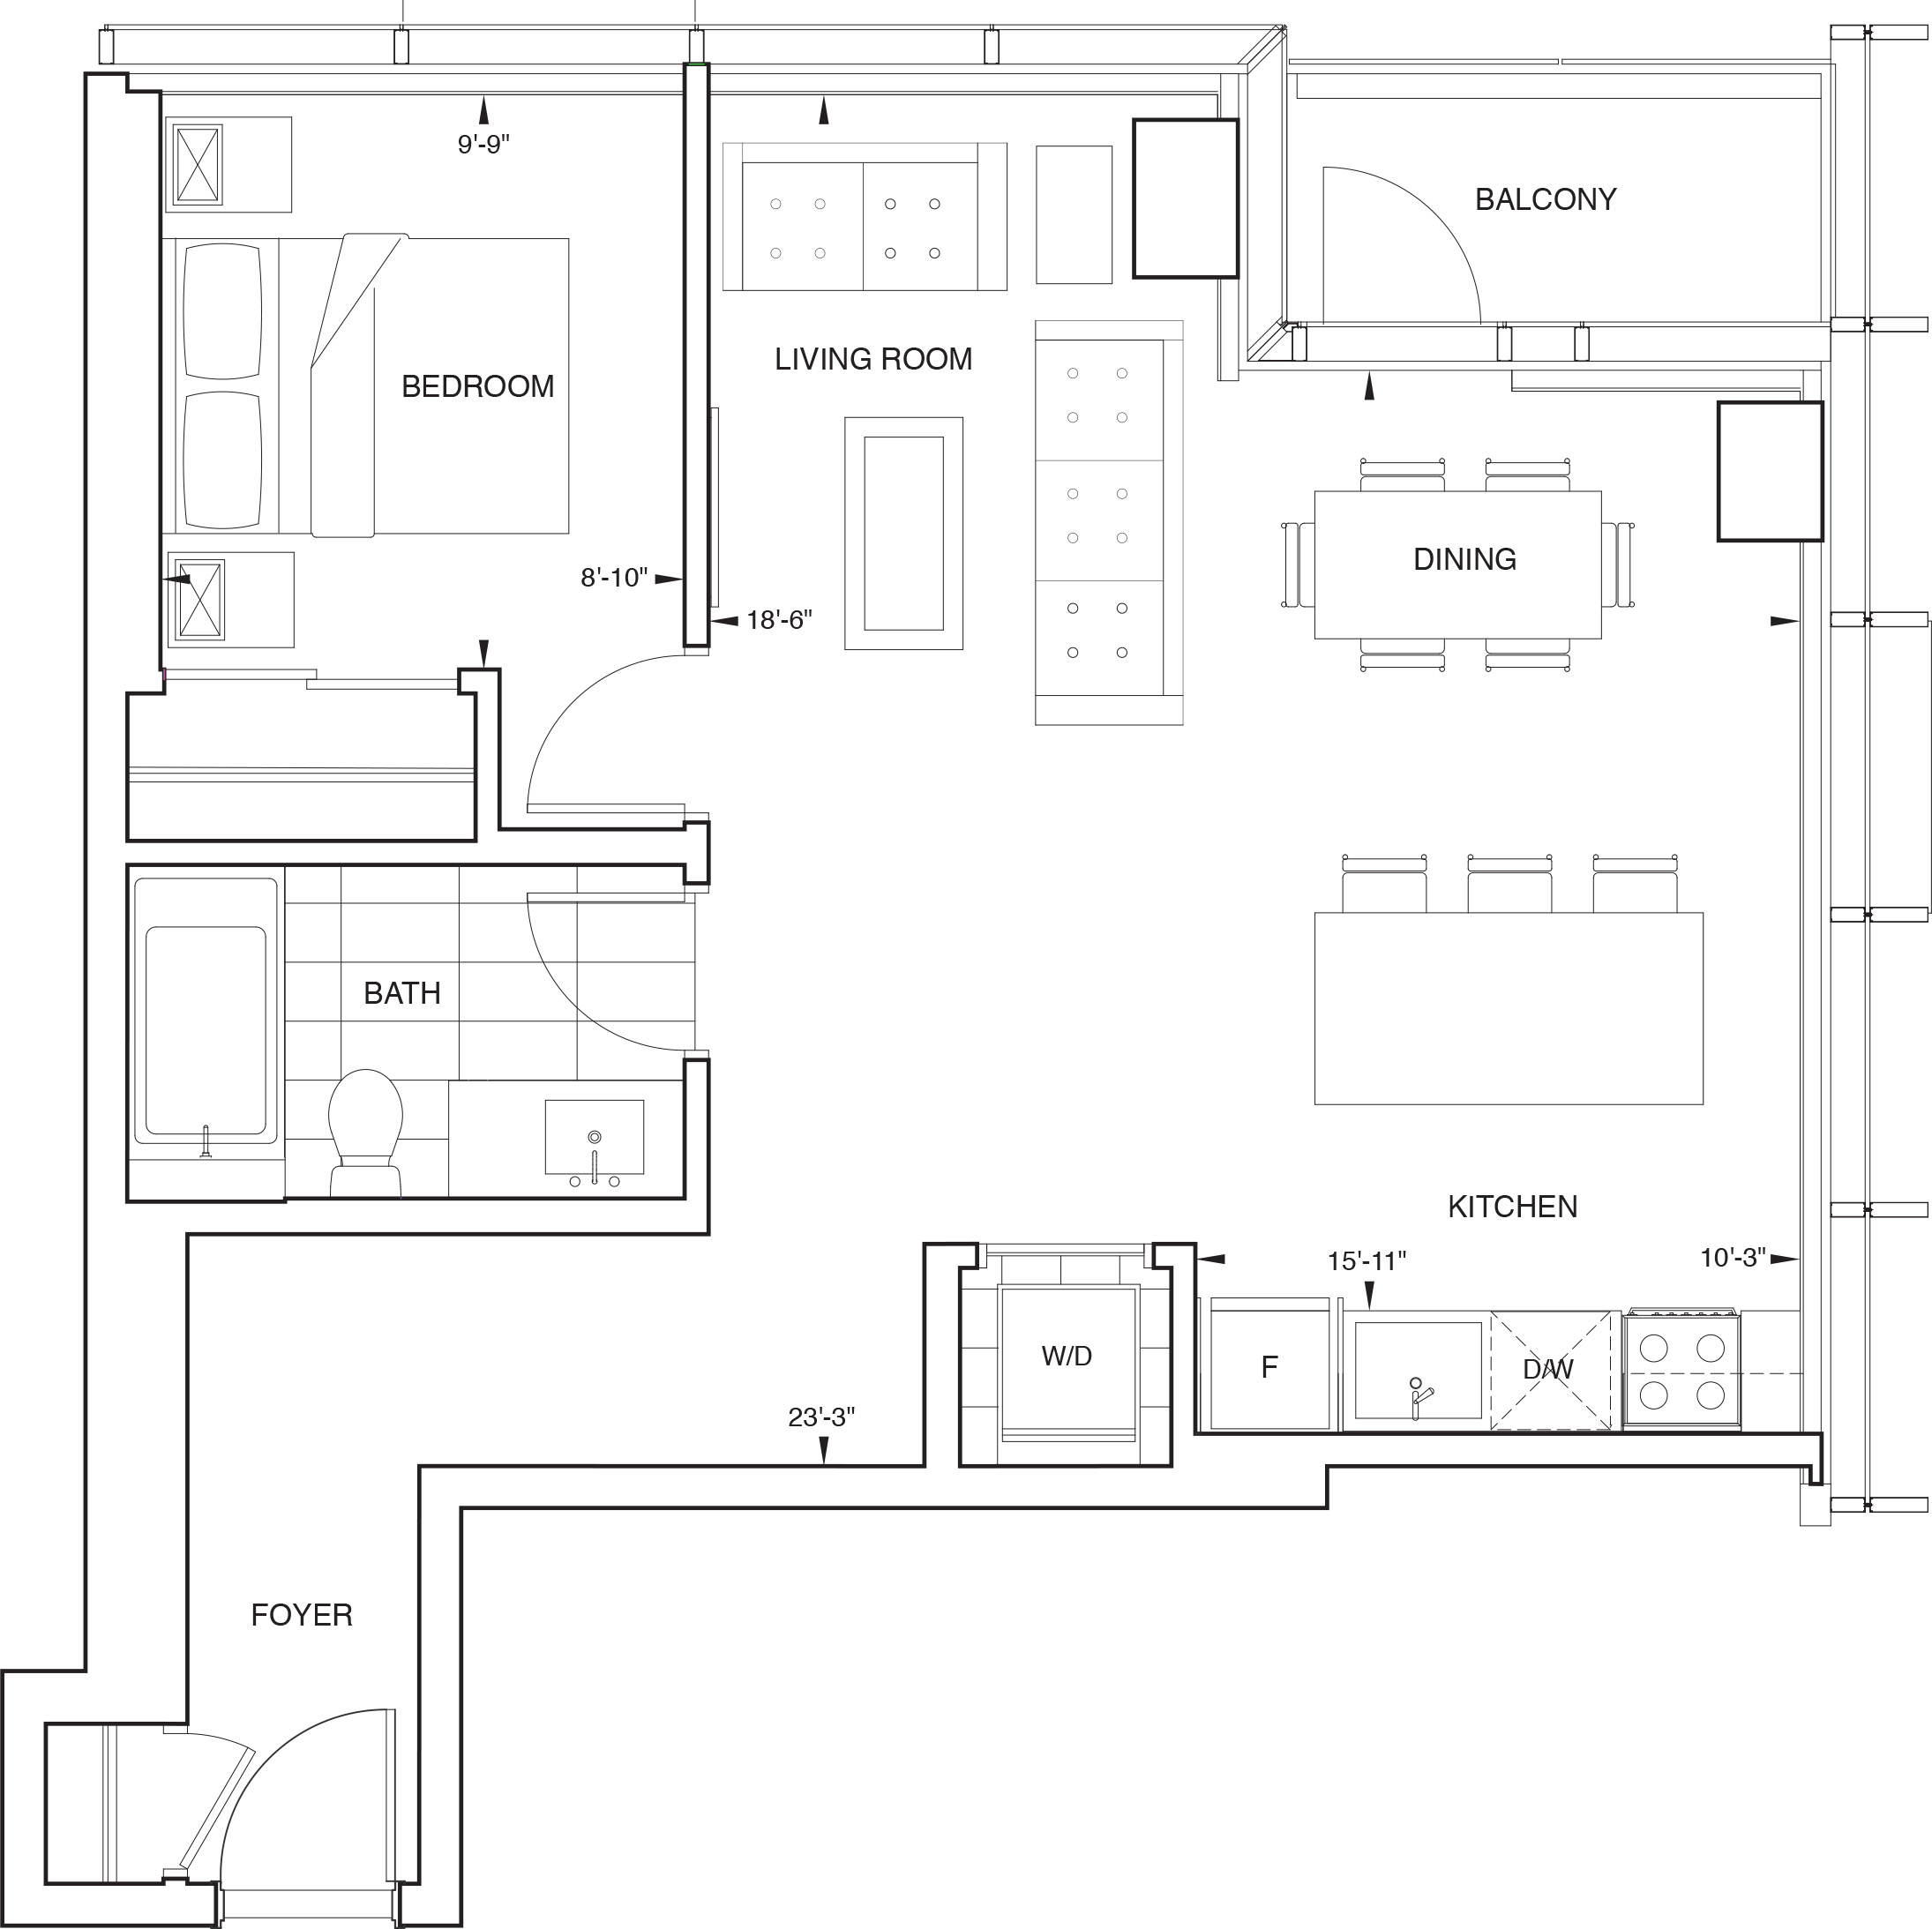 Floorplan for SKY Residence D